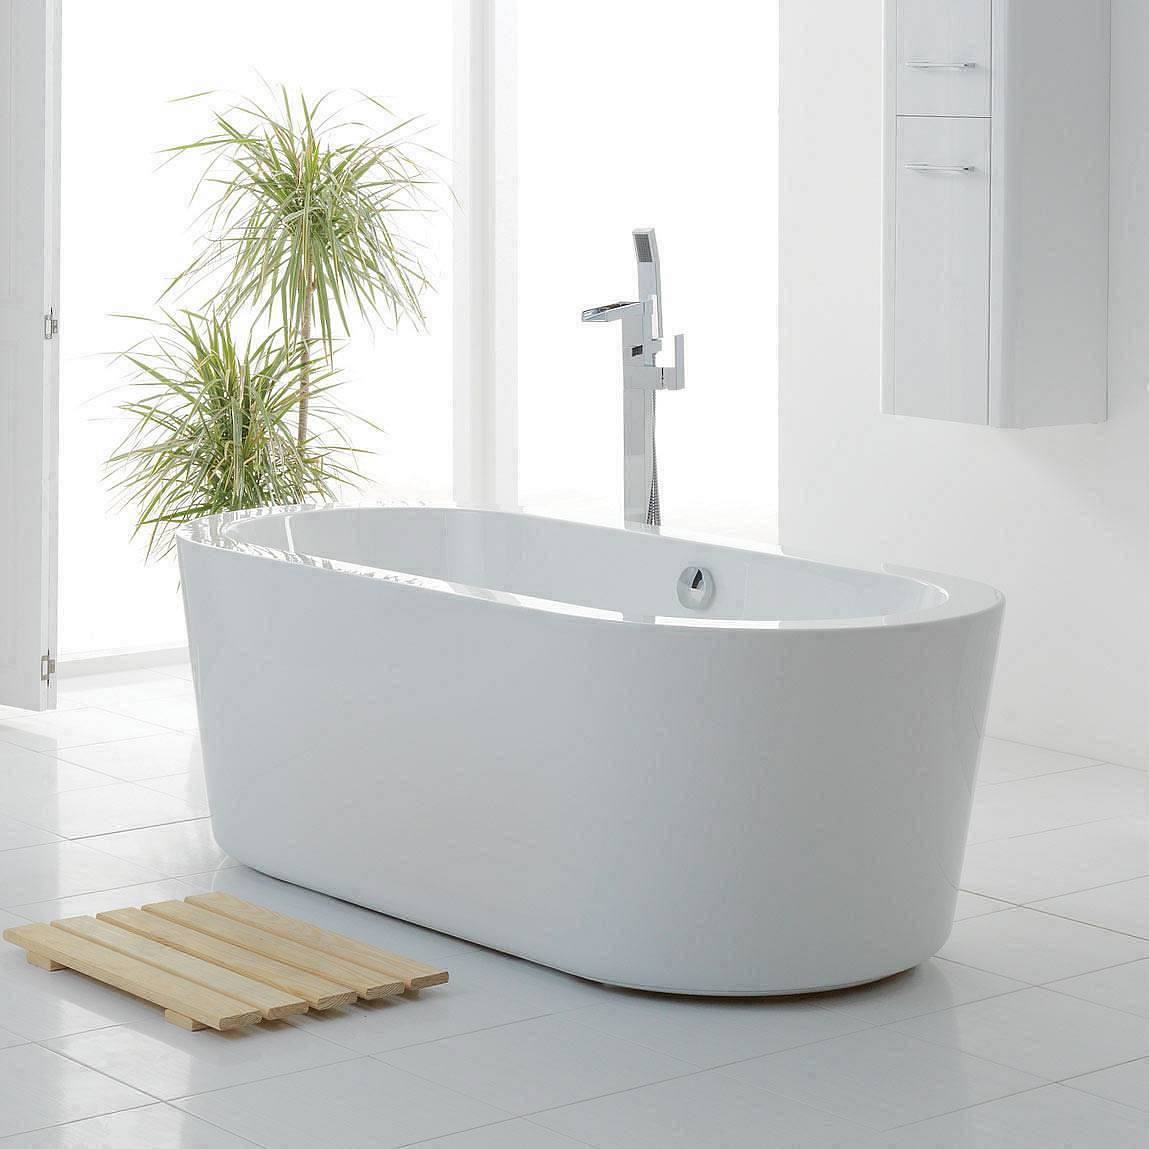 Arc Freestanding Bath Small | VictoriaPlum.com